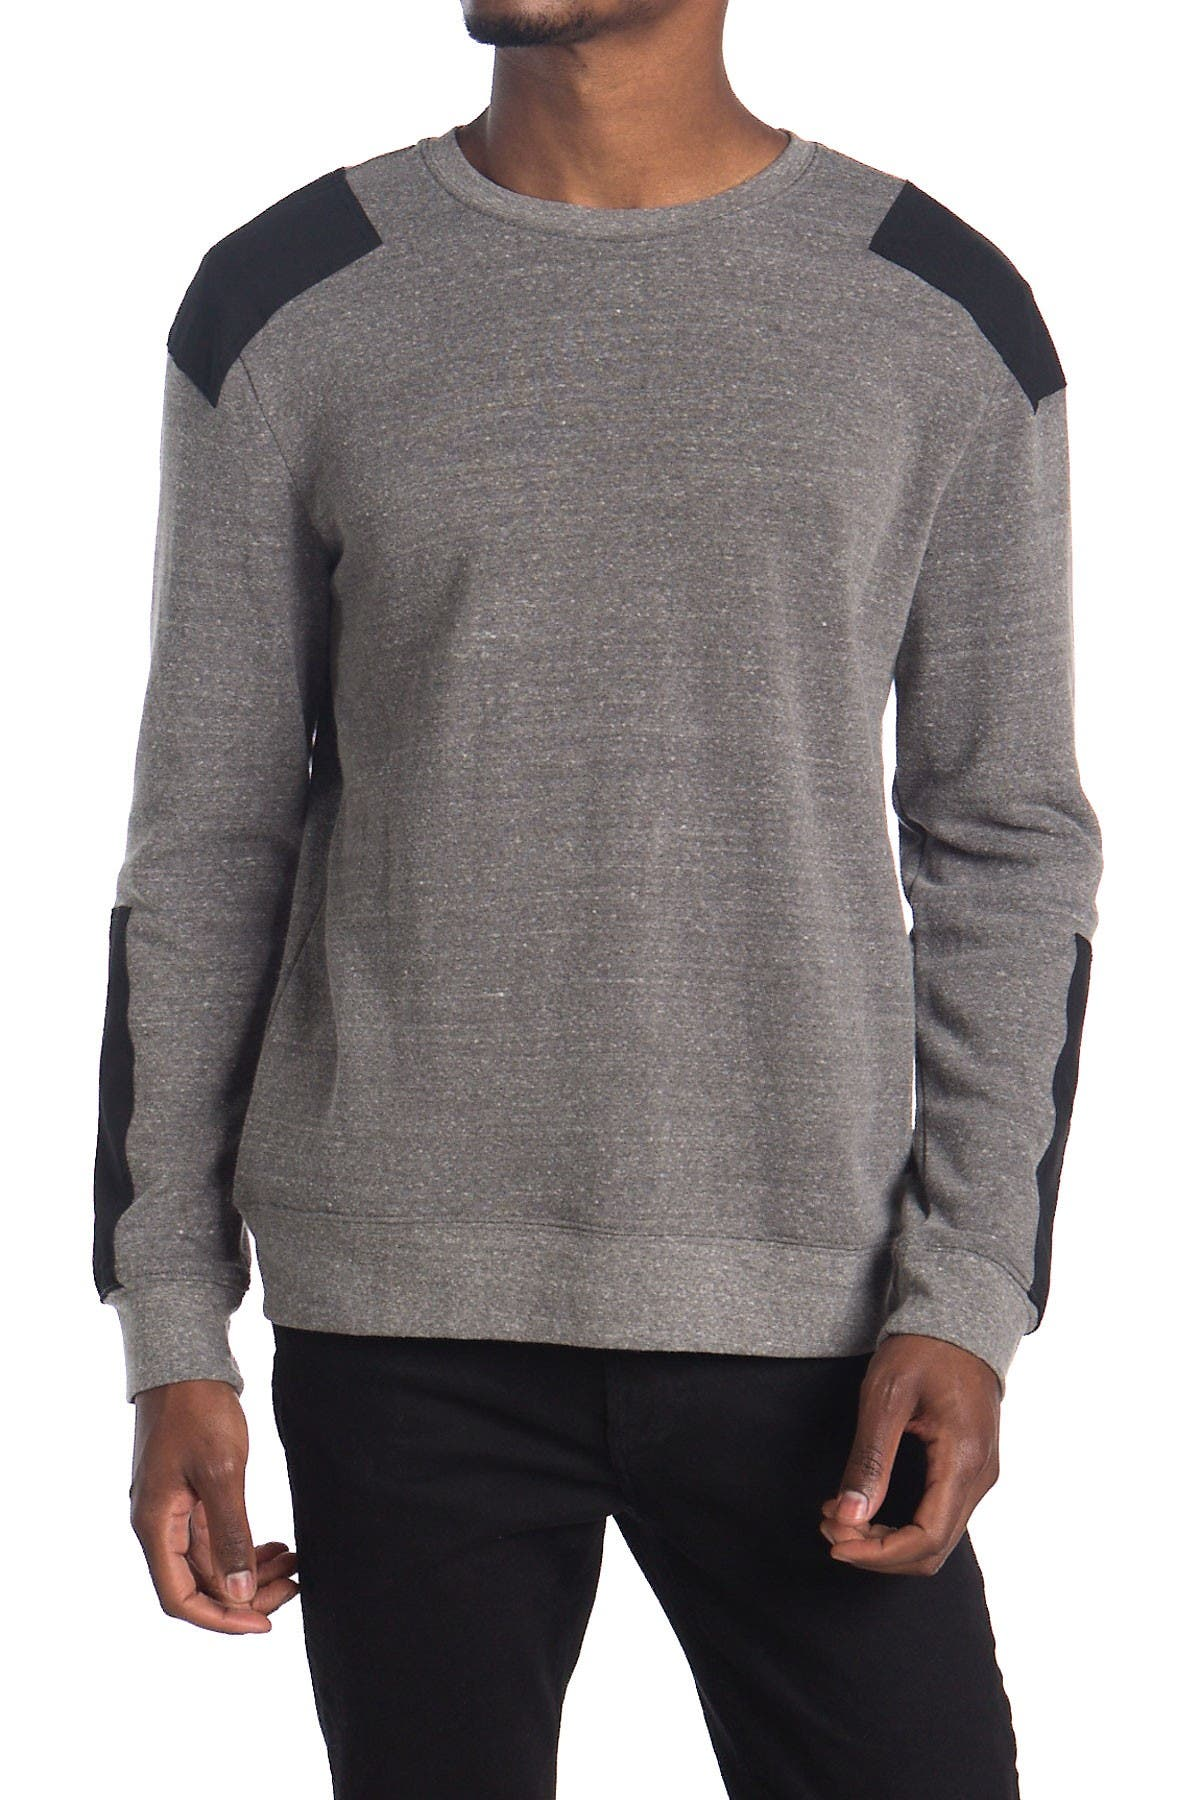 Image of Threads 4 Thought Slim Fit Crew Neck Sweatshirt